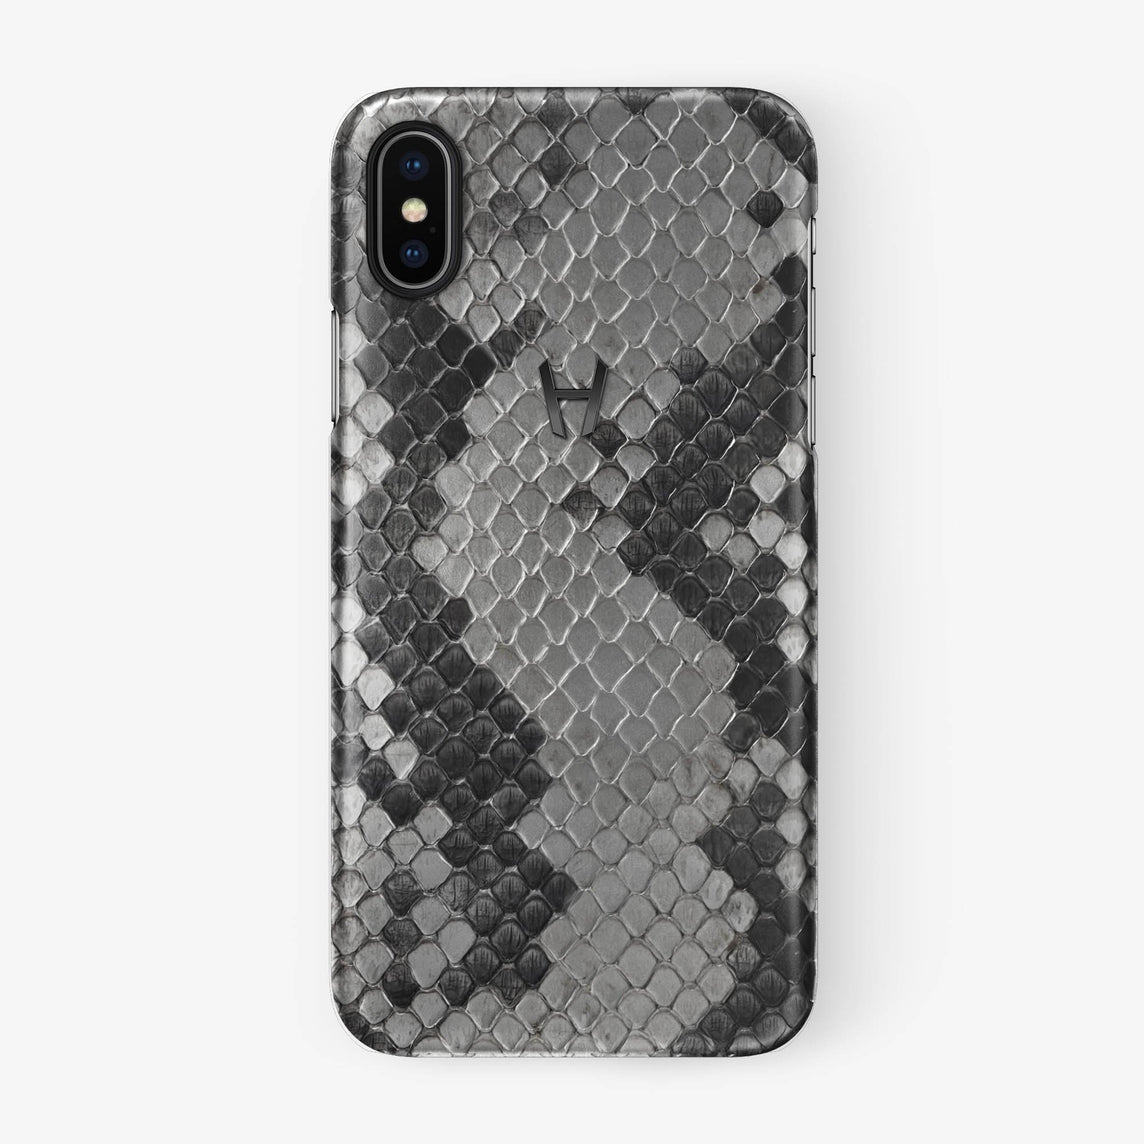 Natural Python iPhone Case for iPhone X finishing black - Hadoro Luxury Cases